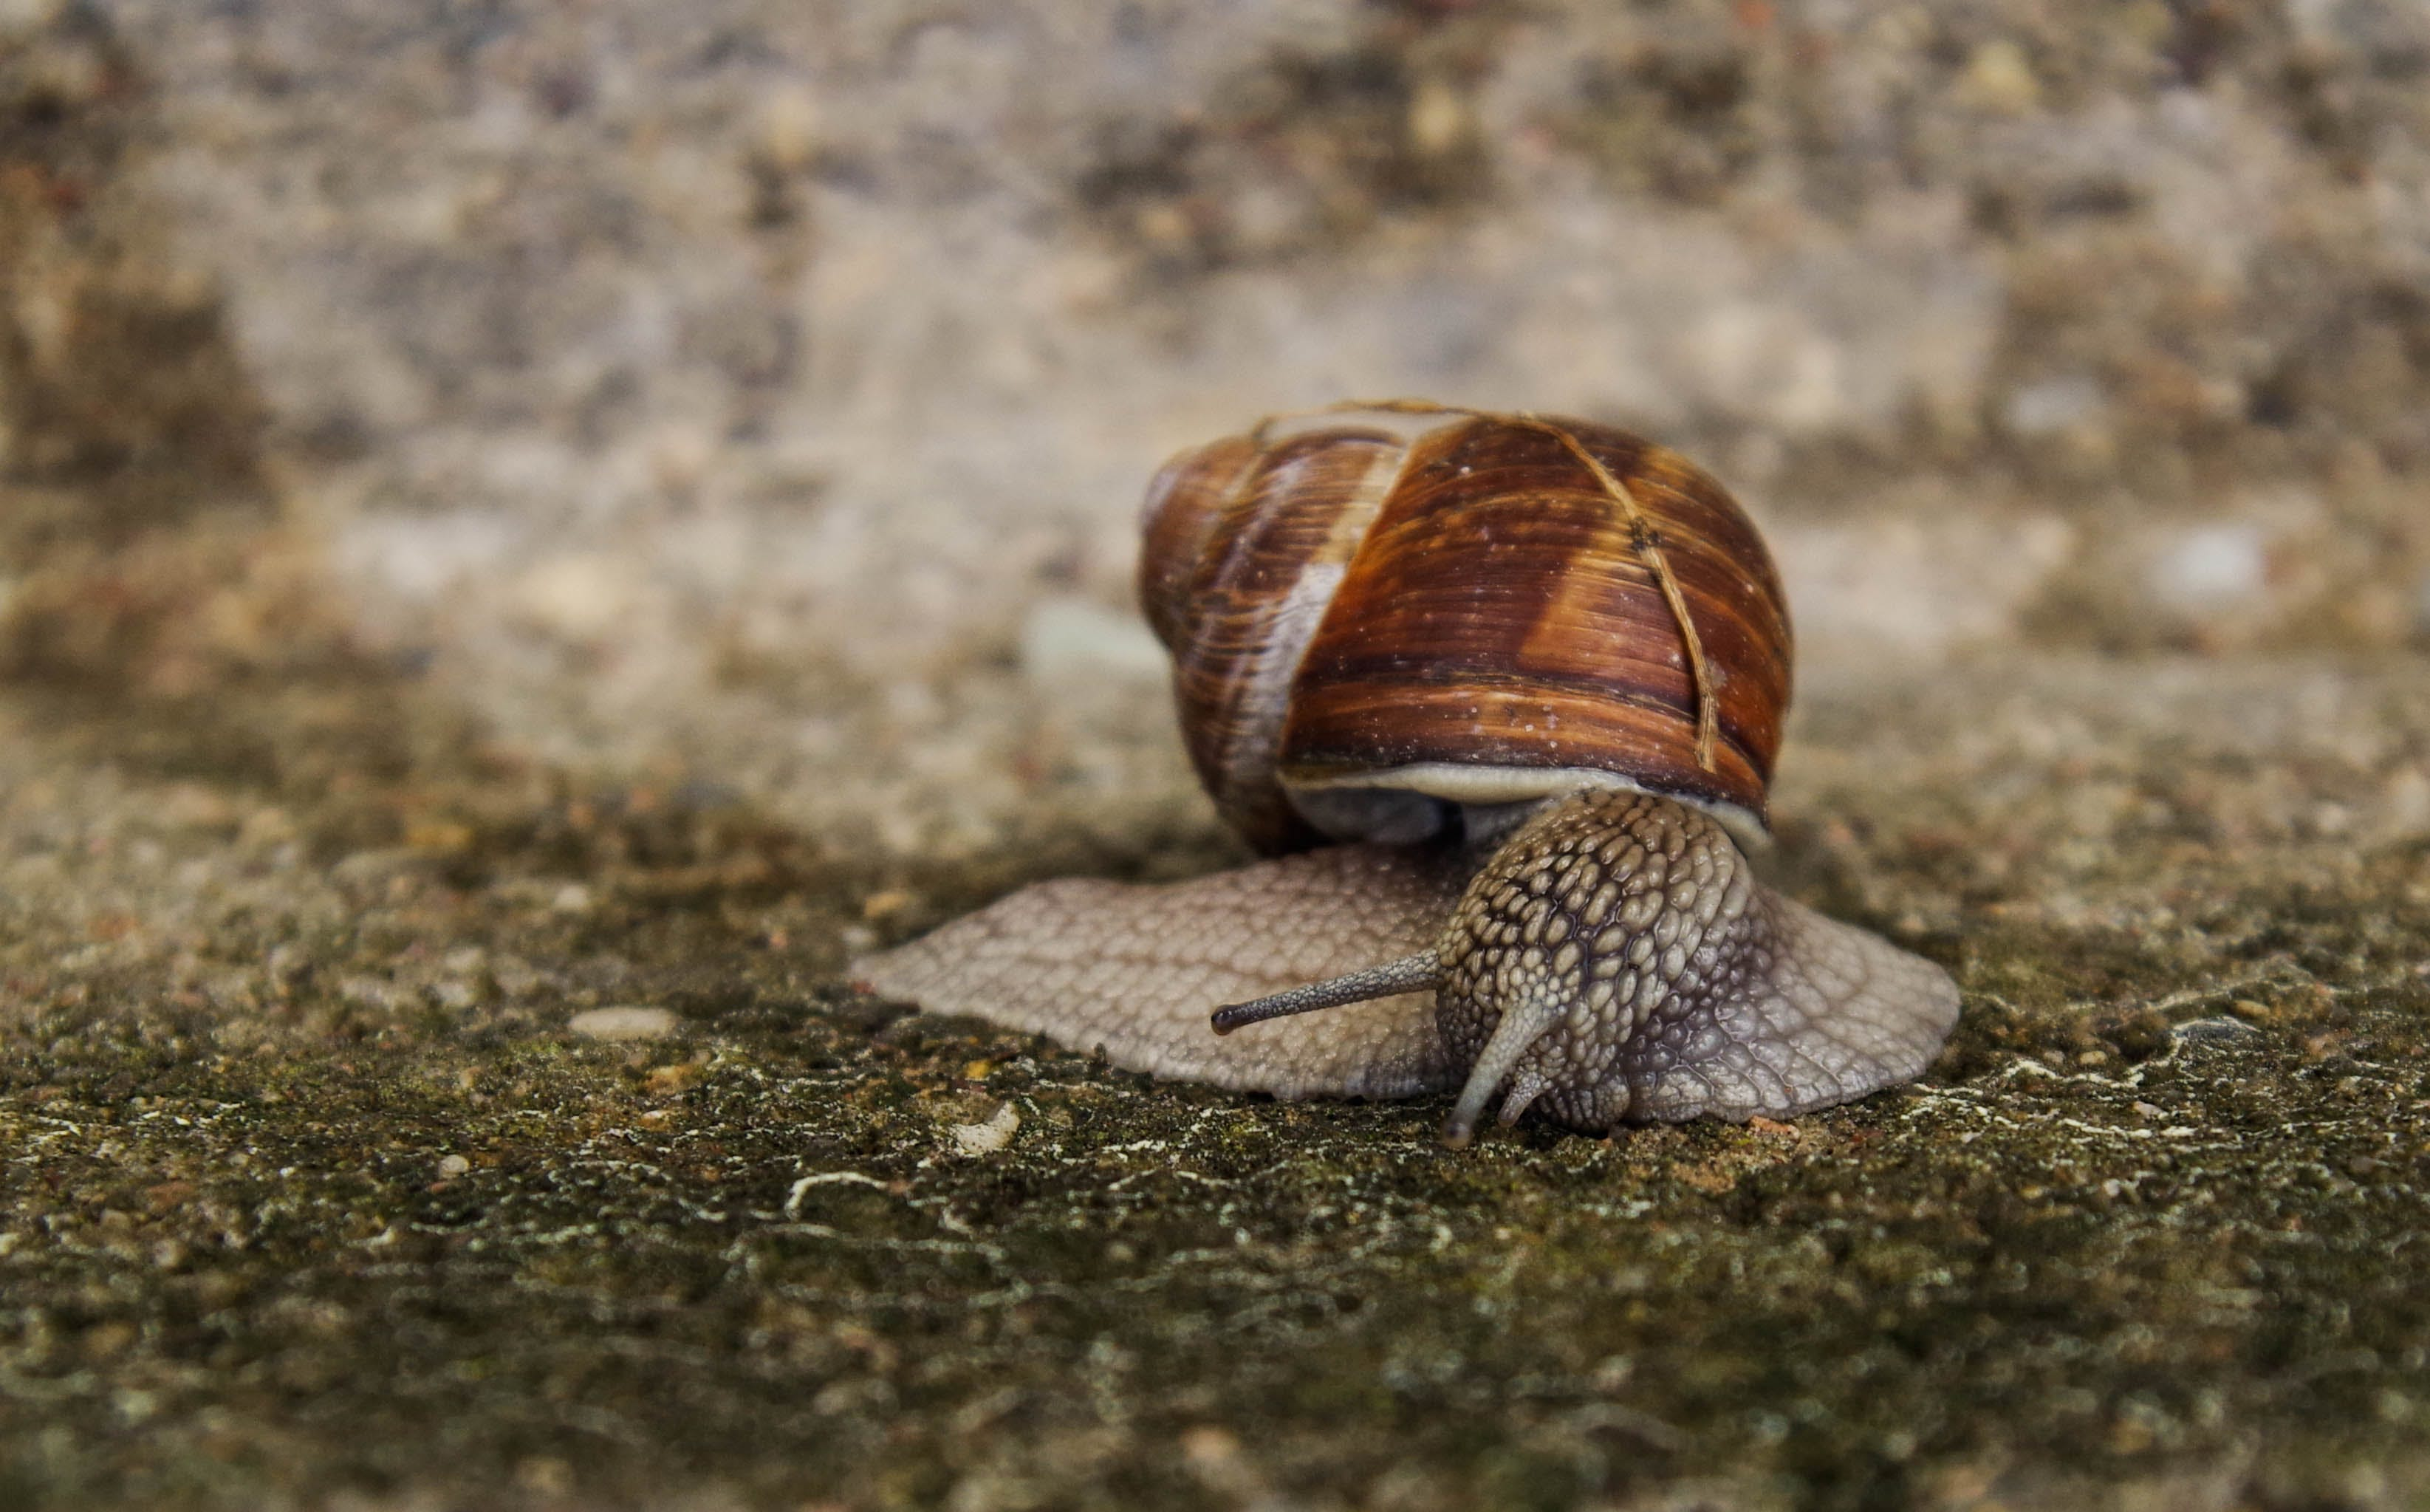 Close-up Photography of Snail